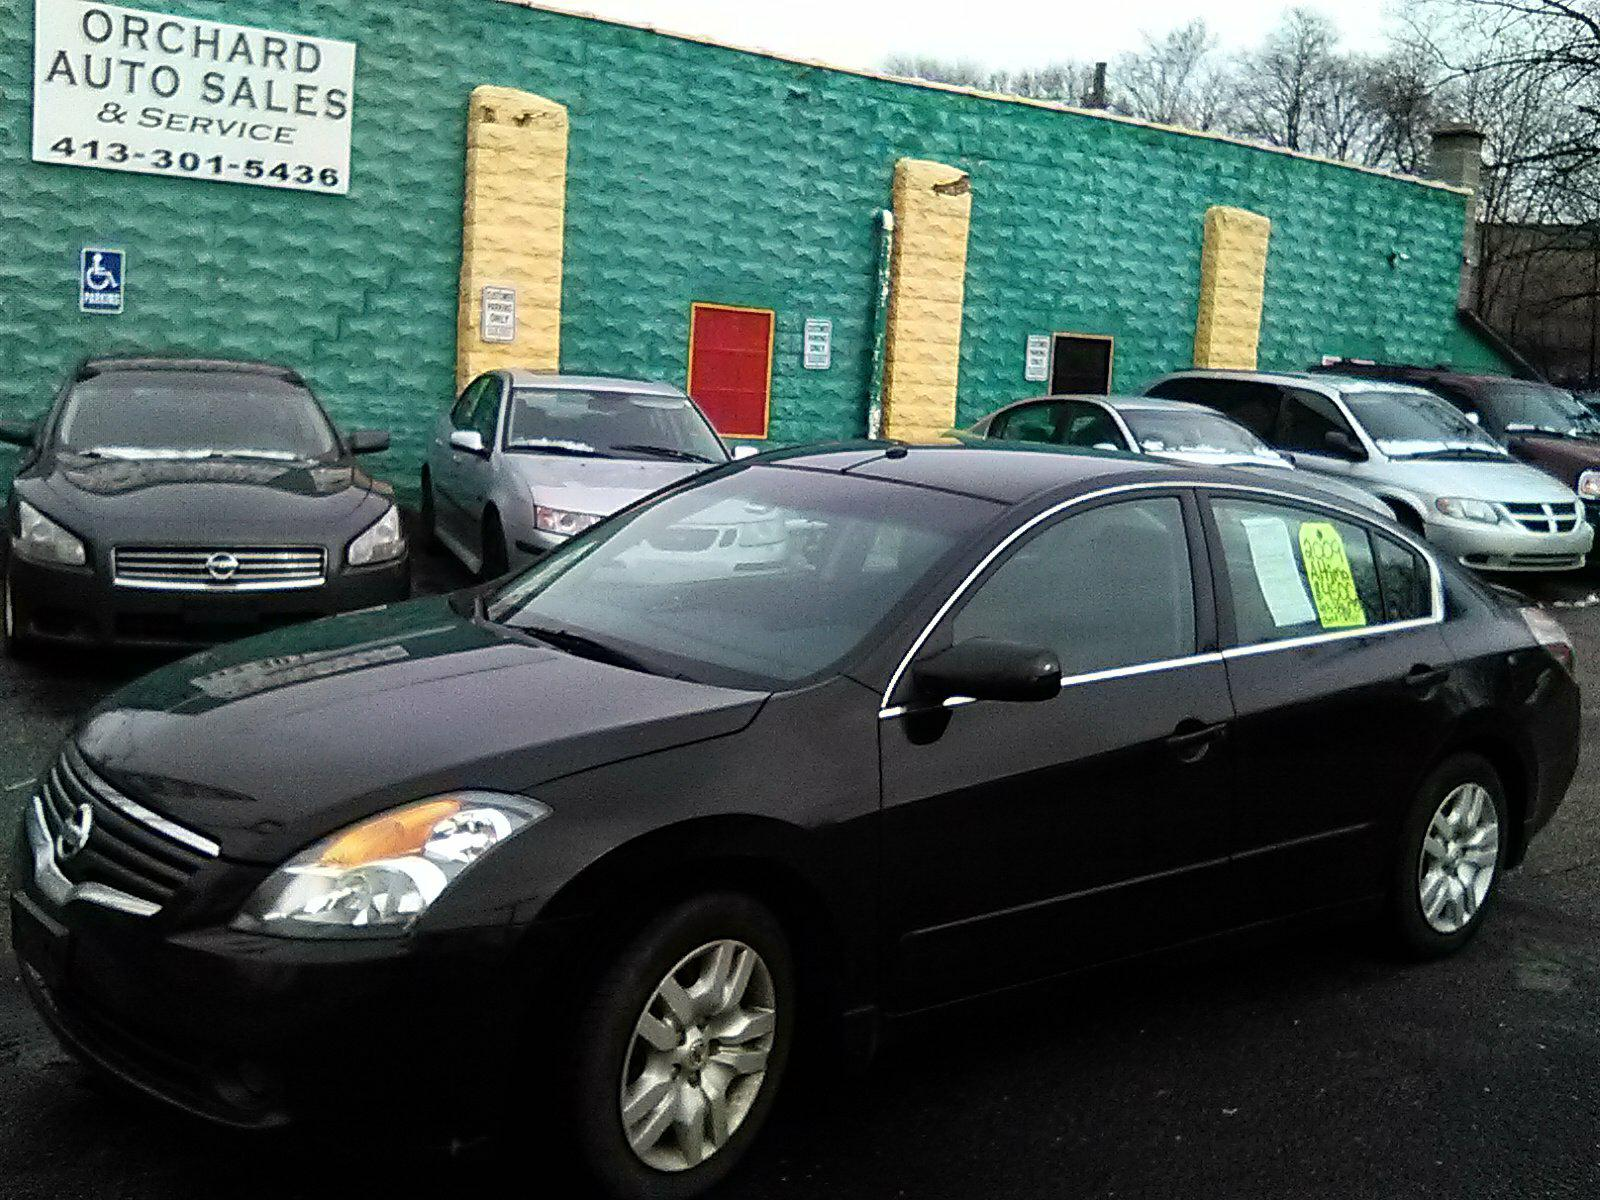 2009 Altima 2.5S has a replacement transmission with118000 on it. Dealer warranty. No rust and No body damage.